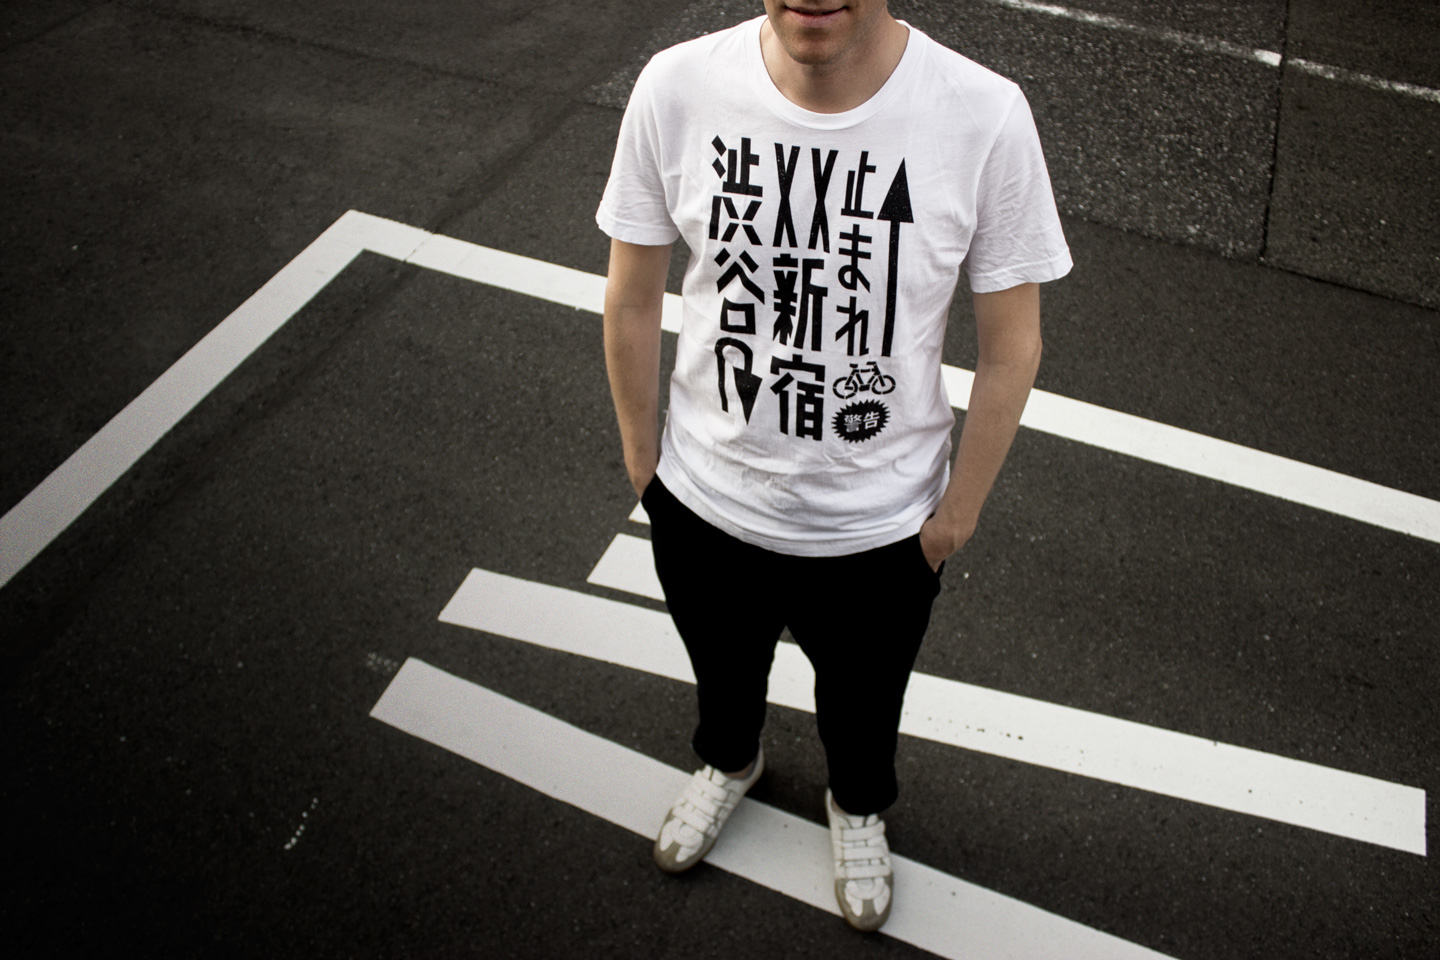 Tokyo Signs - Products inspired by the streets of Tokyo - Tokyo Roadmark Tshirt